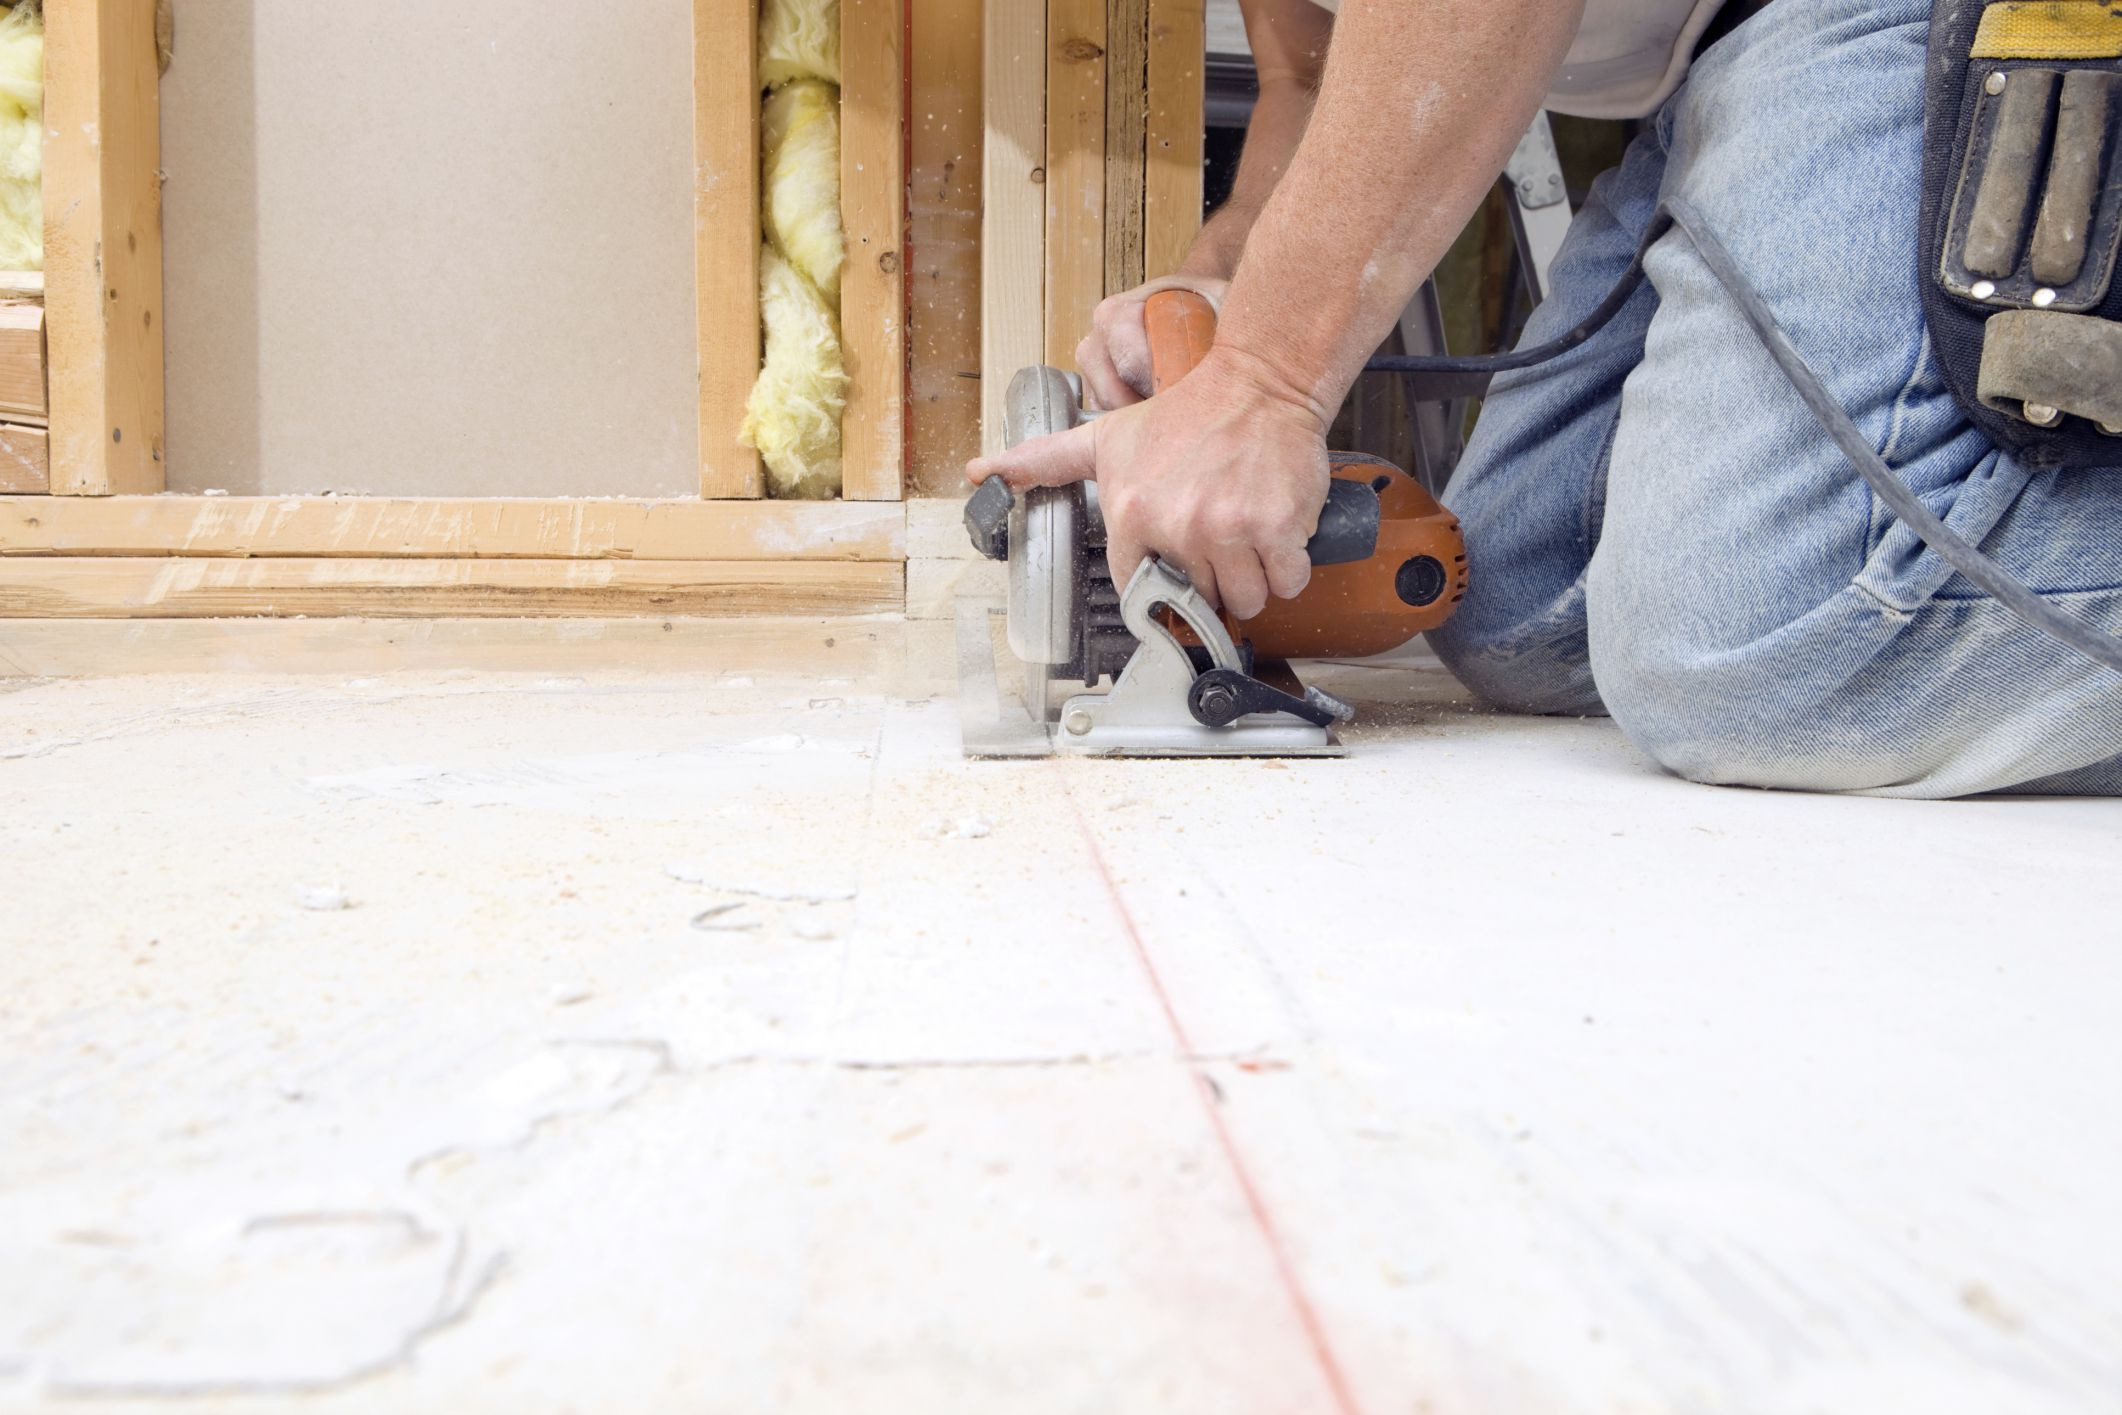 glue down hardwood flooring on plywood of plywood or osb for flooring intended for cutting plywood subfloor with circular saw 185001220 56a4a04b5f9b58b7d0d7e37f